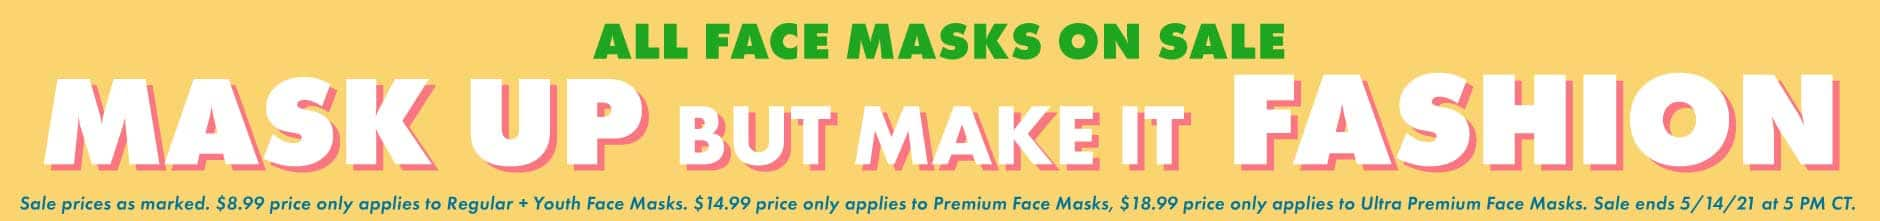 All Face Masks on Sale